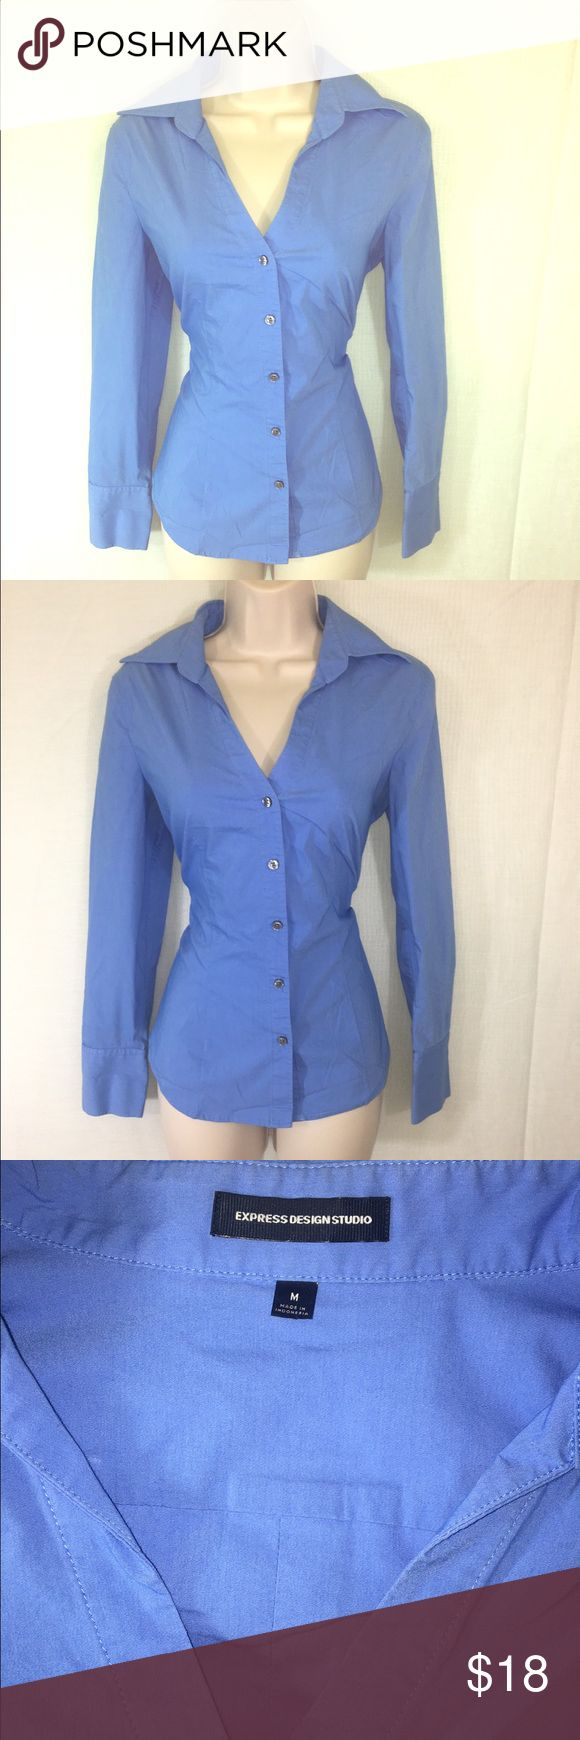 Express Blue Button Down-M A long sleeved button up shirt from Express in a soft blue. The color and feminine cut make it a beautiful and flattering piece for a professional look! Express Tops Button Down Shirts